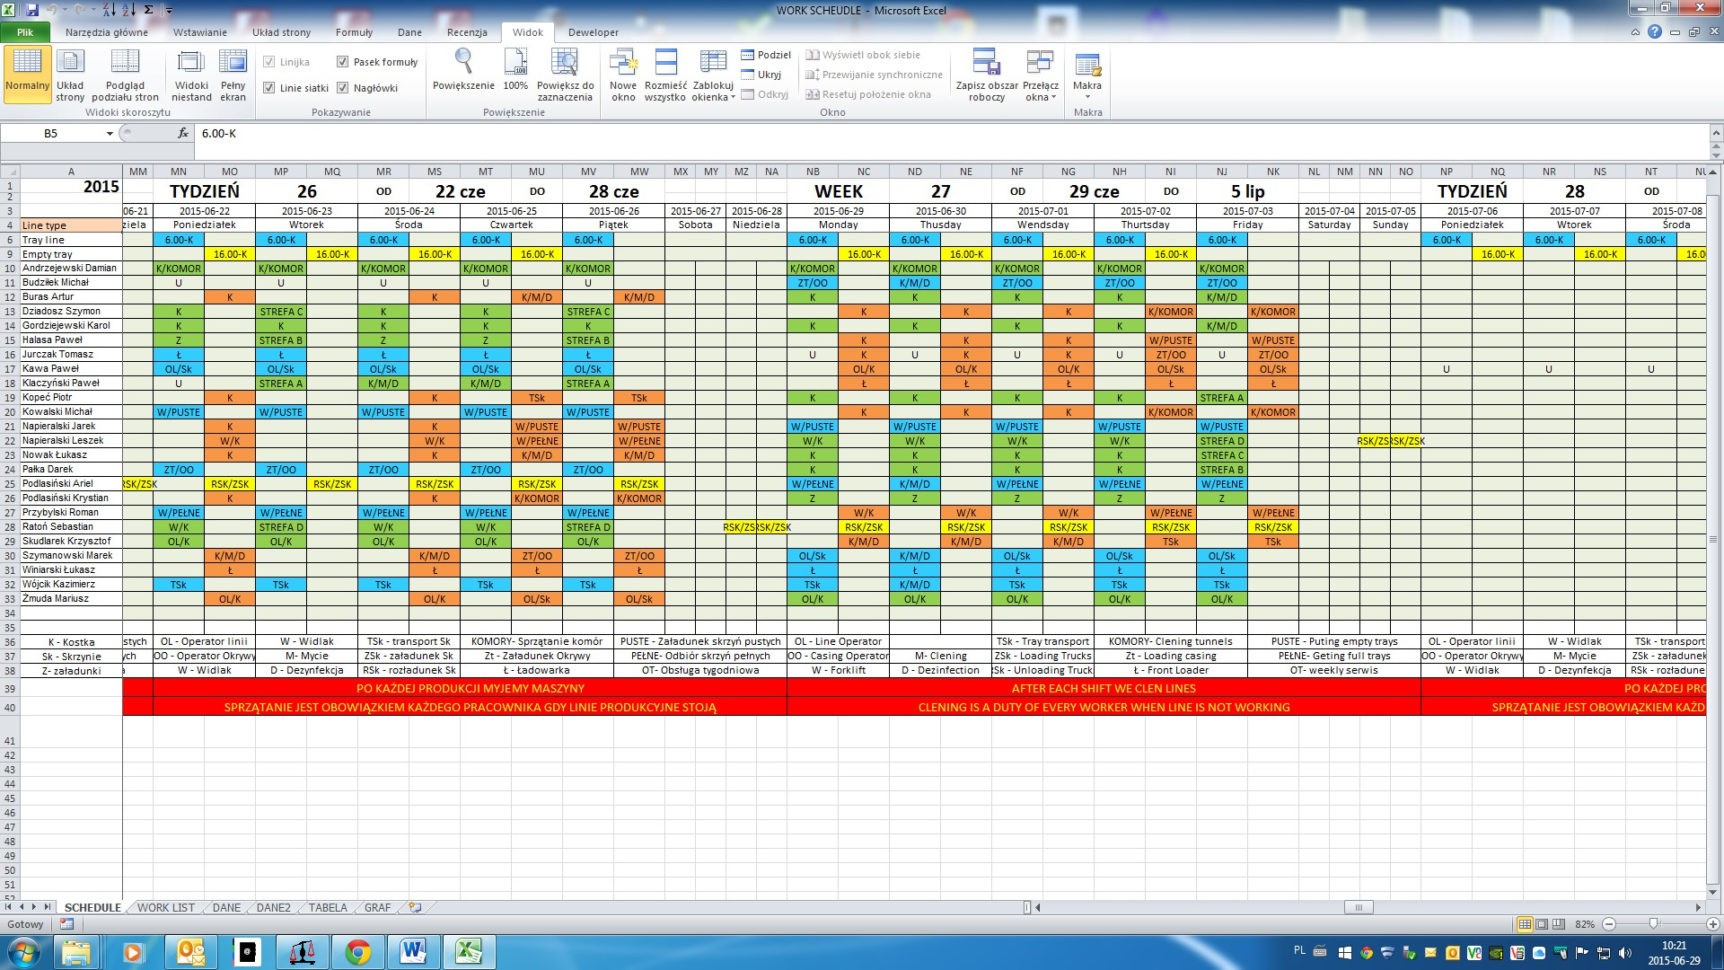 Excel Spreadsheet Template For Employee Schedule With Employee Point System Spreadsheet Elegant Spreadsheet Fill Employee